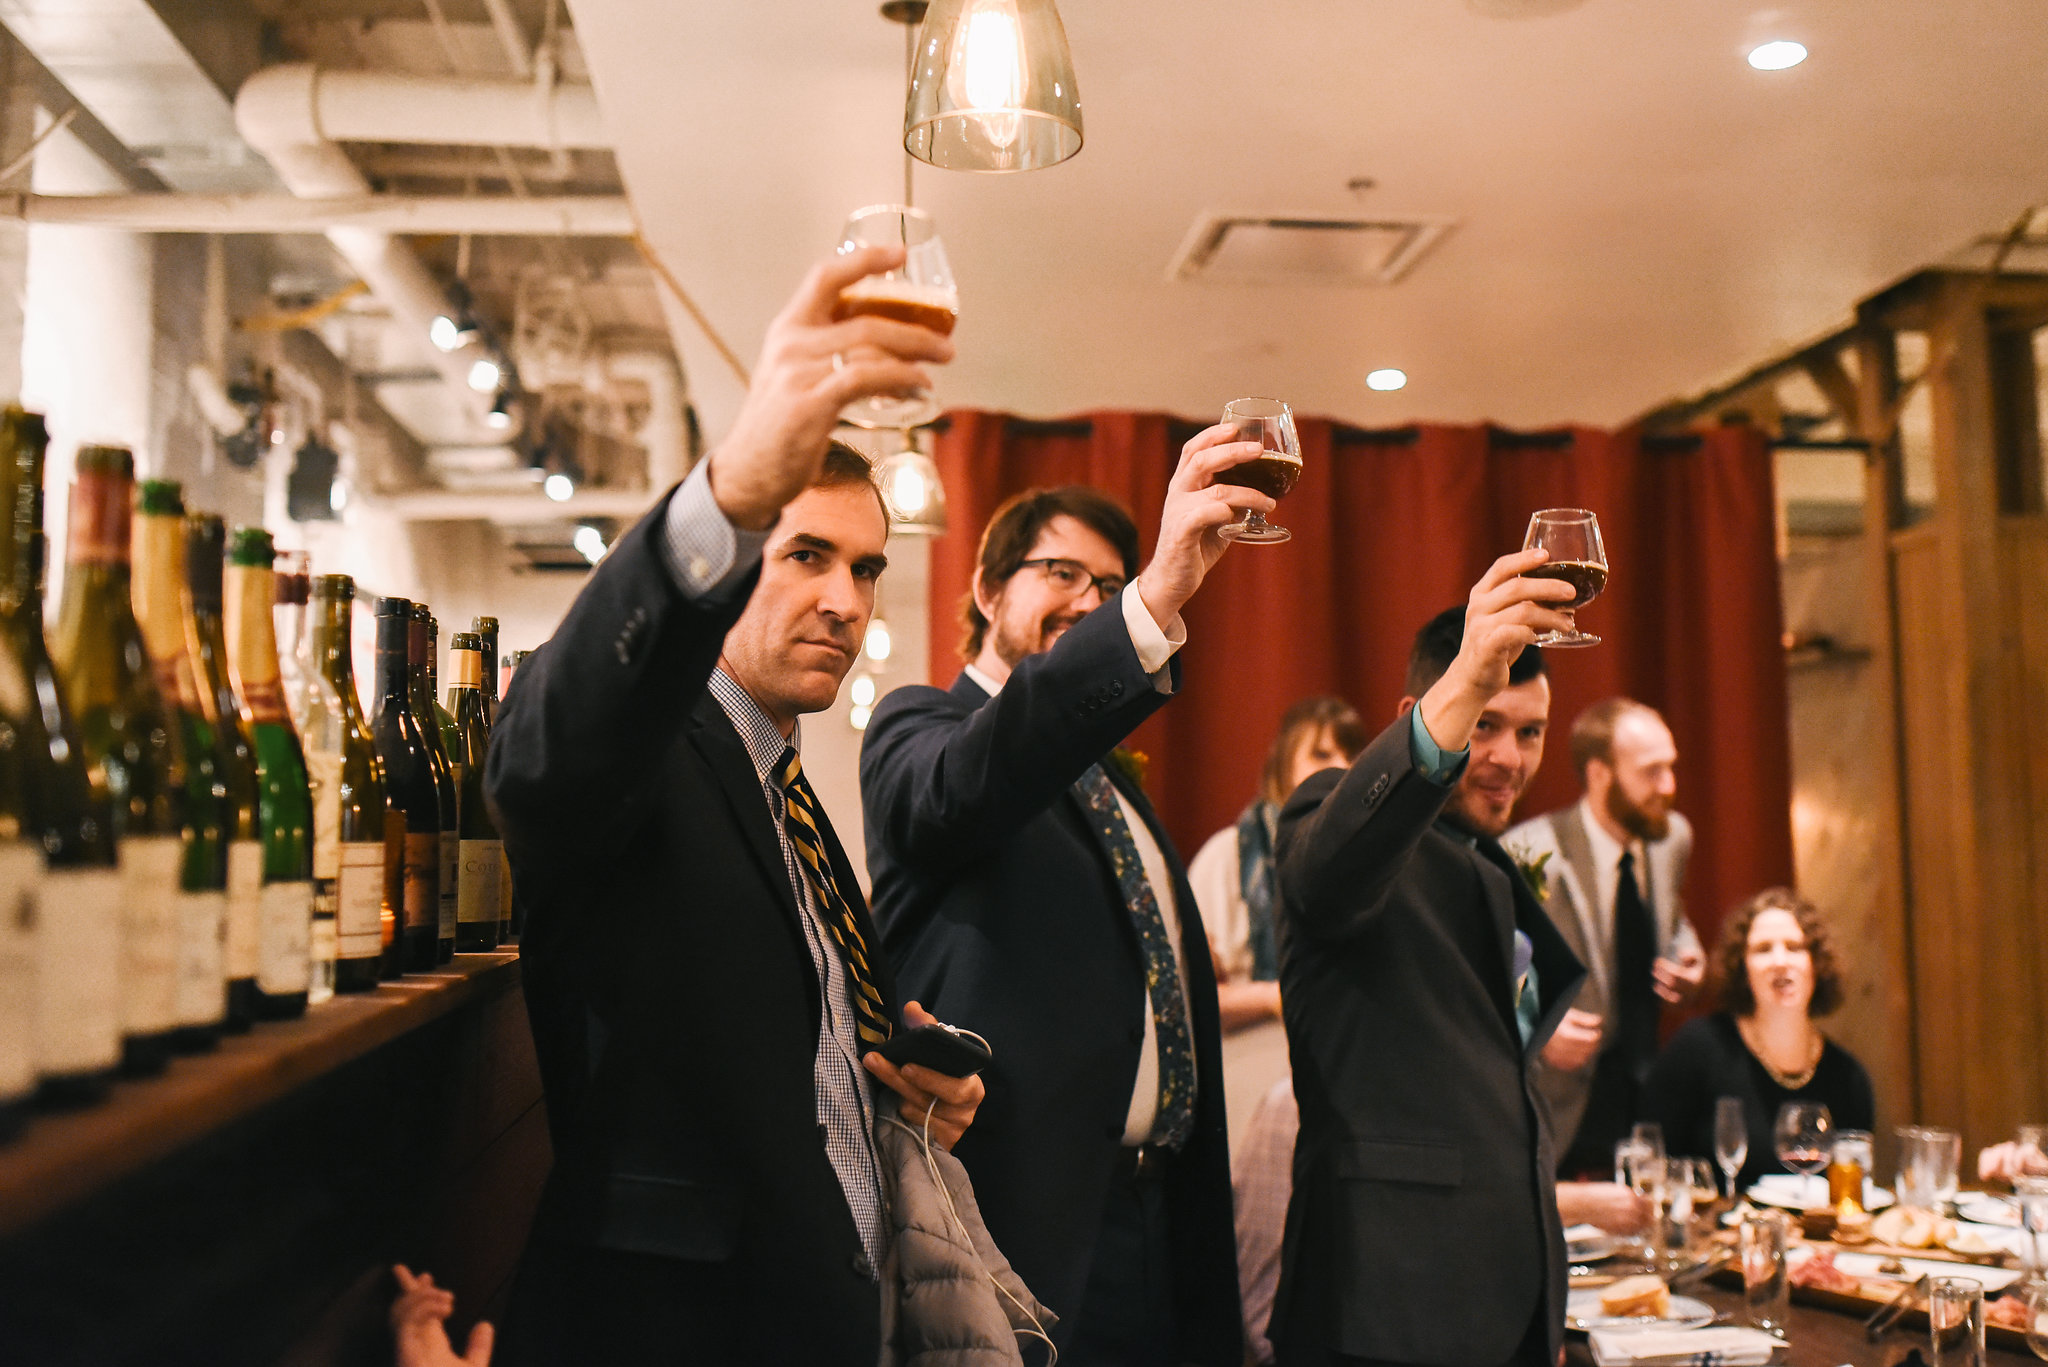 Woodberry, Baltimore, La Cuchara, Intimate Wedding, Nature, Maryland Wedding Photographer, Romantic, Classic, Groom and Family Giving Toast at Wedding Reception